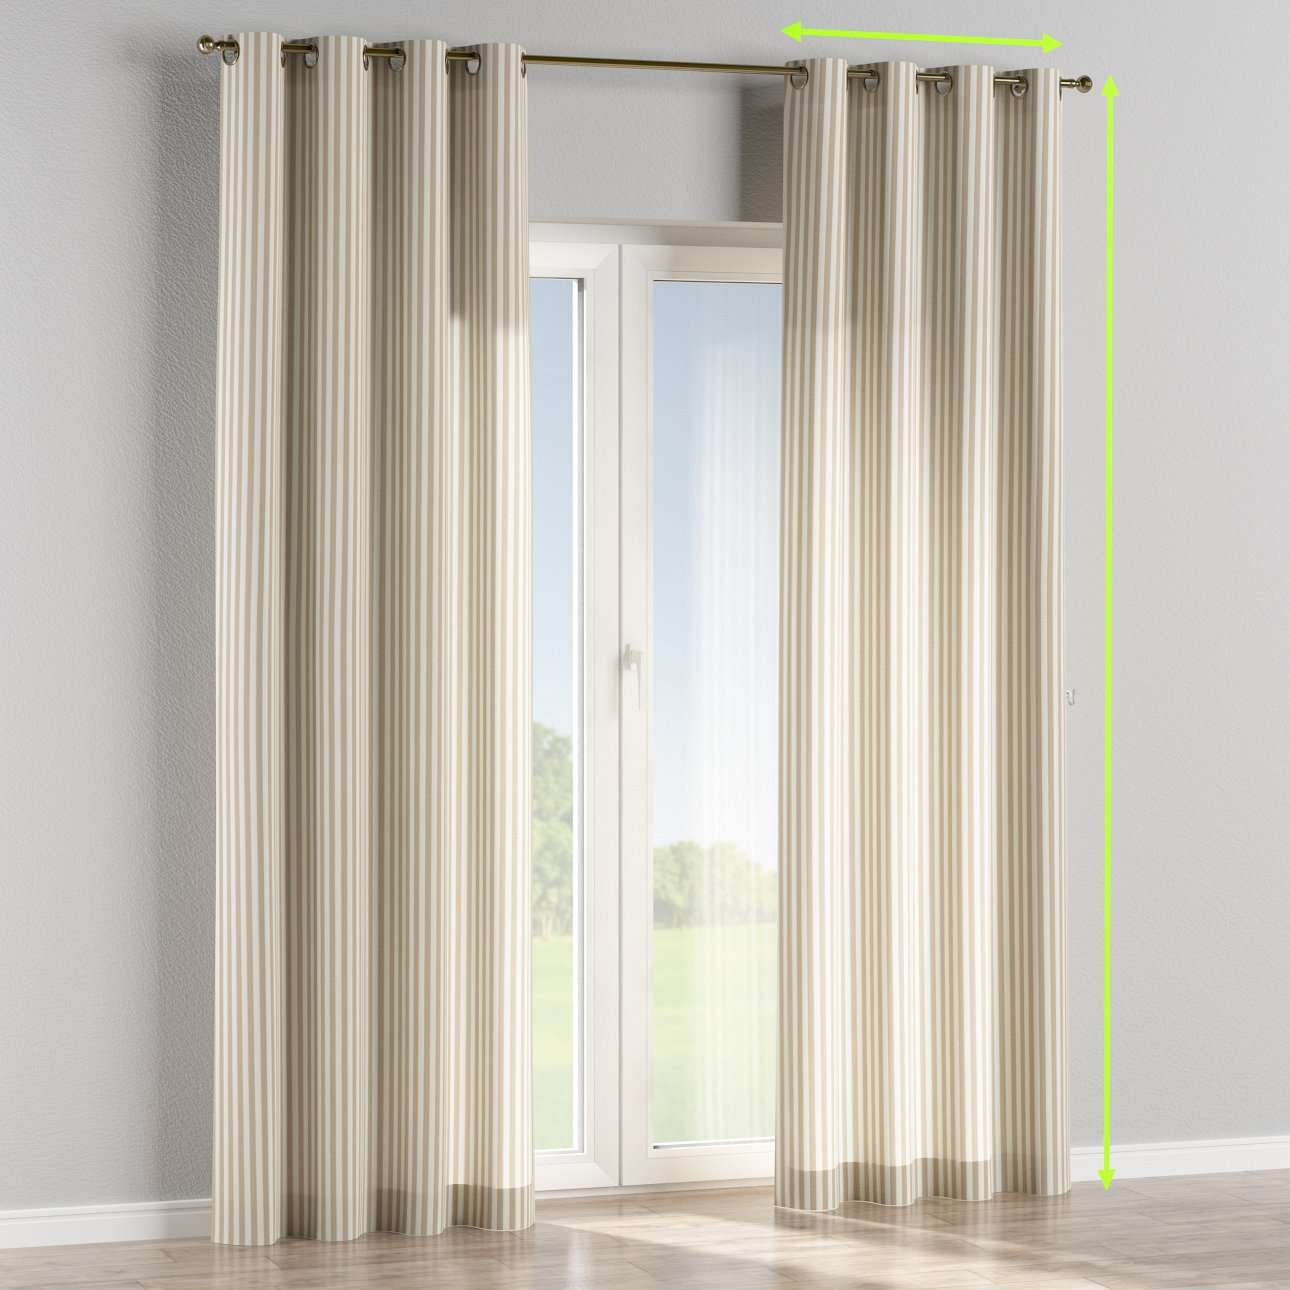 Eyelet lined curtains in collection Quadro, fabric: 136-07